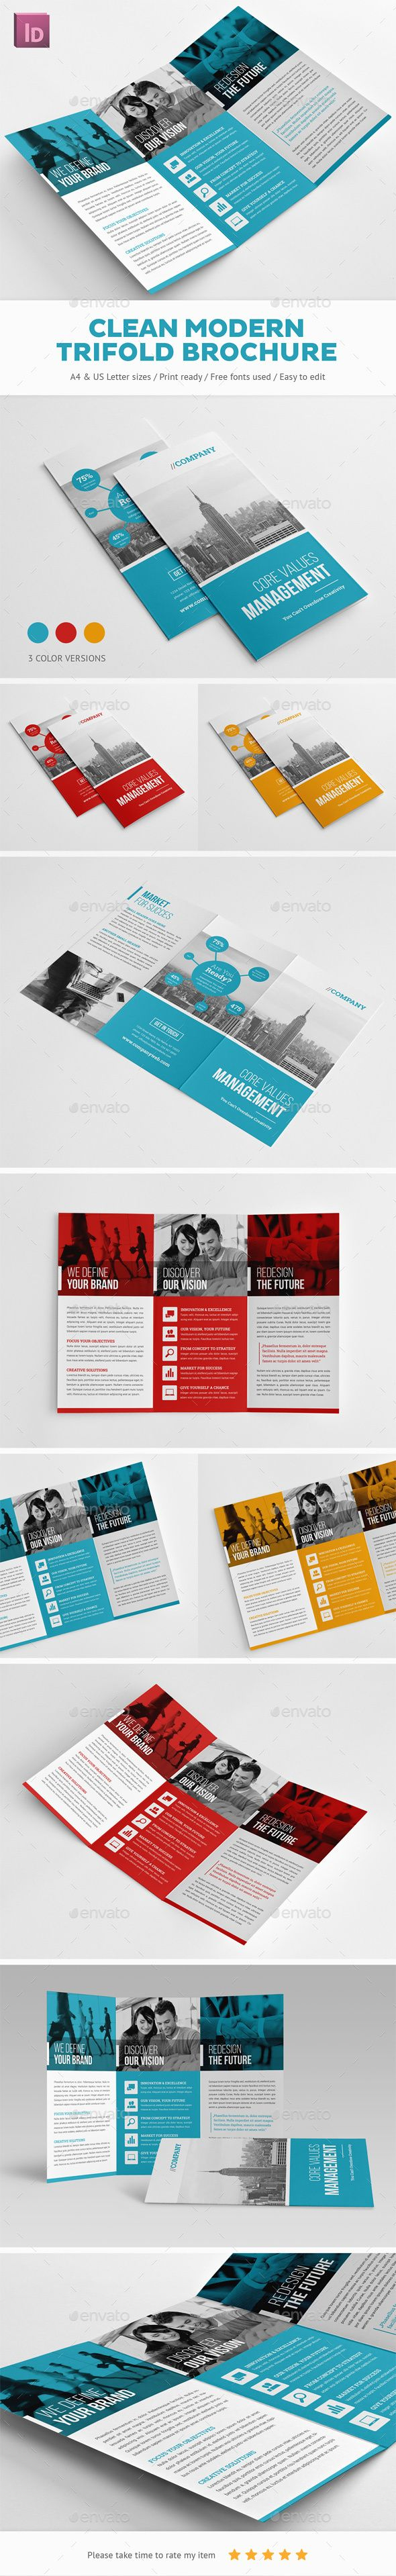 Clean Modern Trifold Brochure Template InDesign INDD #design Download: http://graphicriver.net/item/clean-modern-trifold-brochure/13353317?ref=ksioks